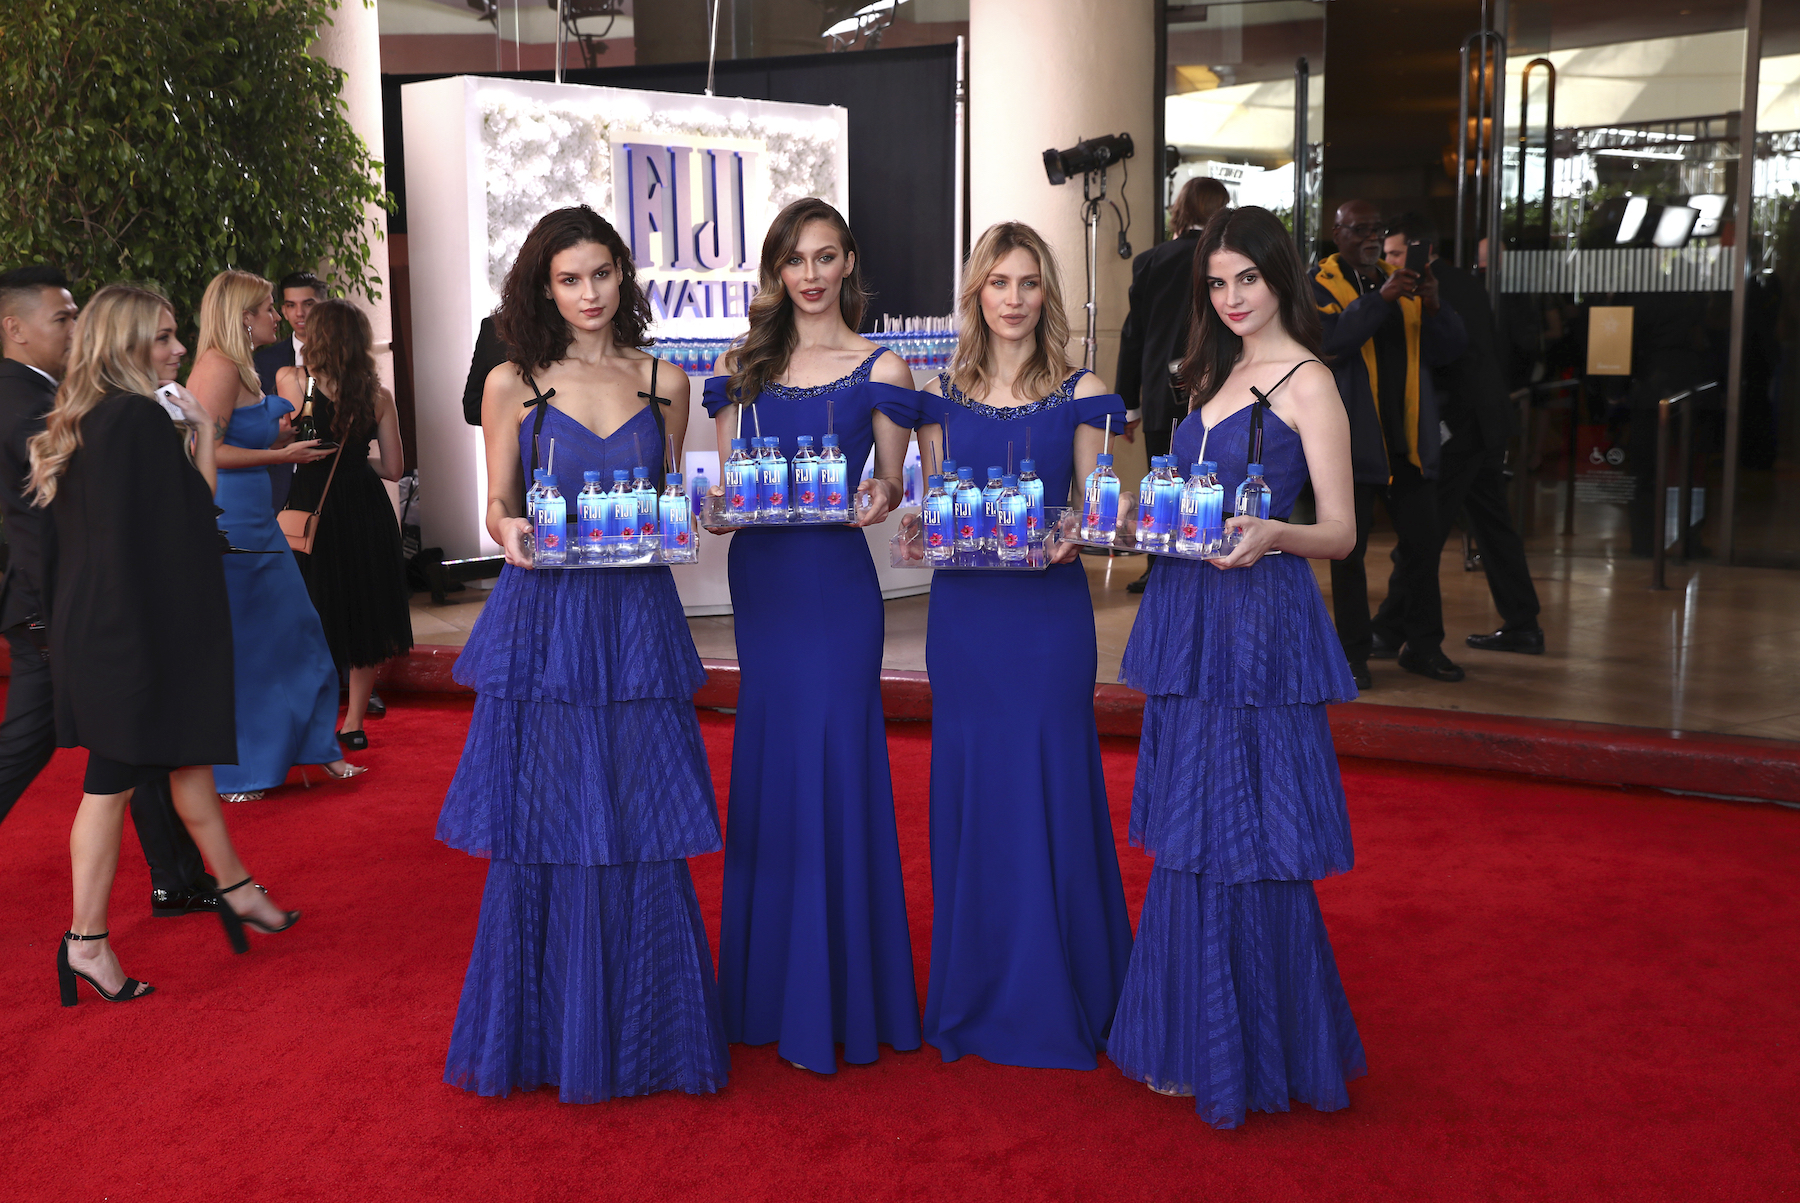 <div class='meta'><div class='origin-logo' data-origin='AP'></div><span class='caption-text' data-credit='Matt Sayles/Invision for FIJI Water/AP Images'>FIJI Water at the 76th annual Golden Globe® Awards on Sunday, Jan. 6, 2019 in Beverly Hills, Calif.</span></div>